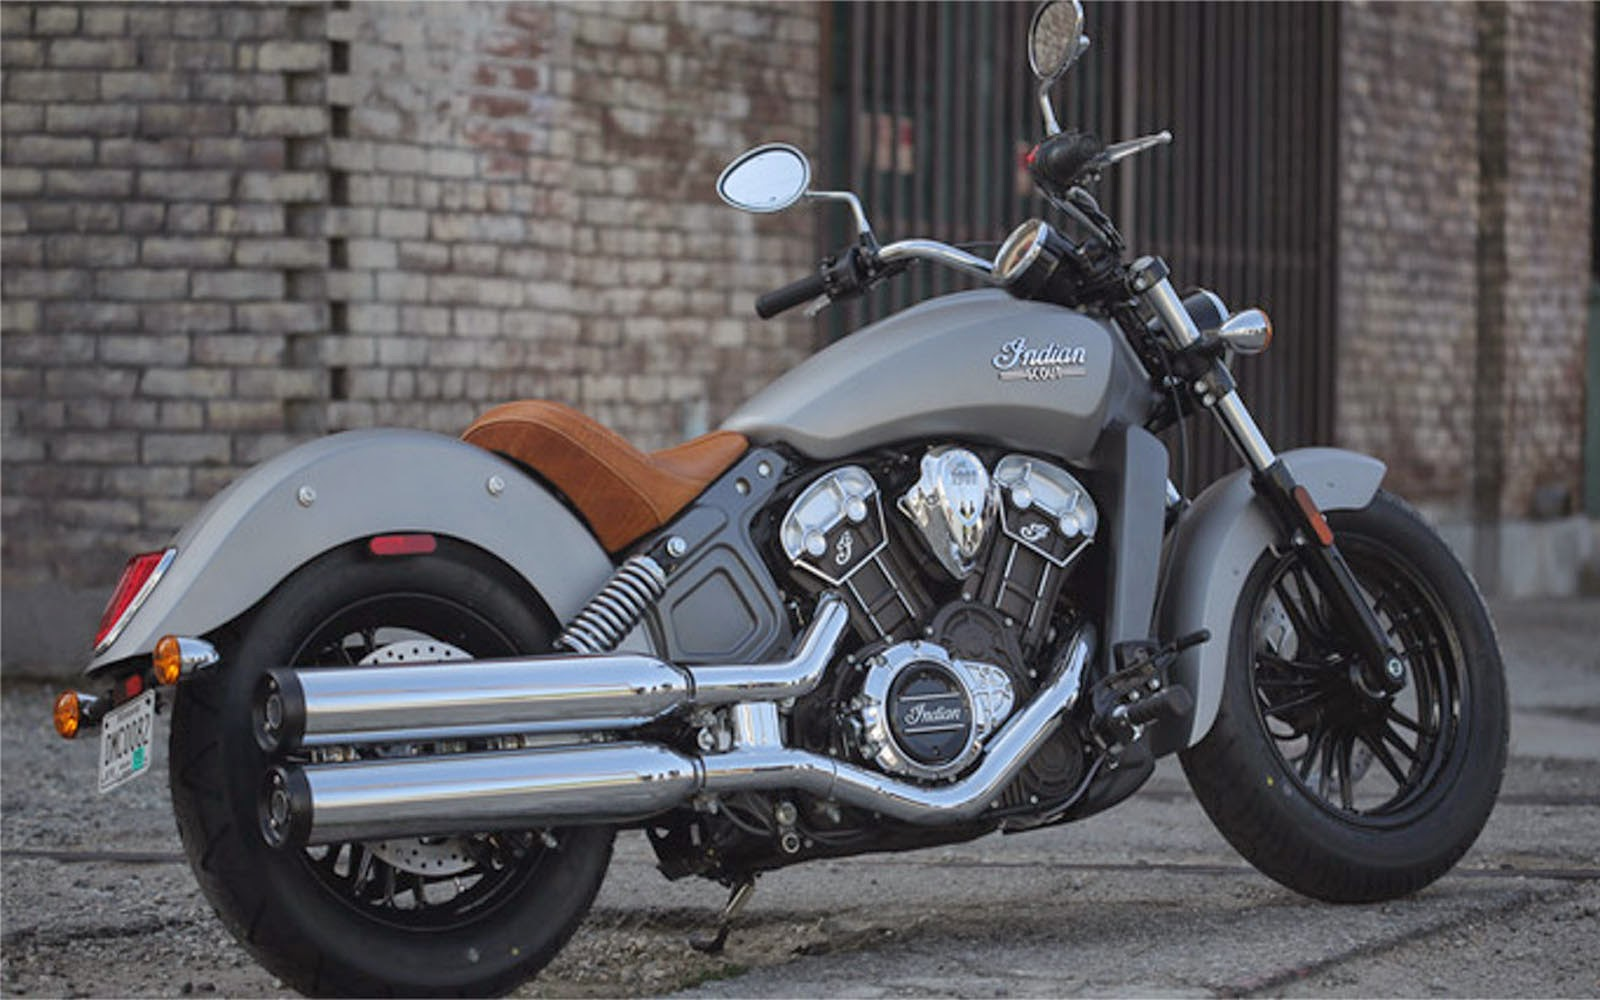 2015 wallpapers indian scout 2015 desktop wallpapers indian scout 2015